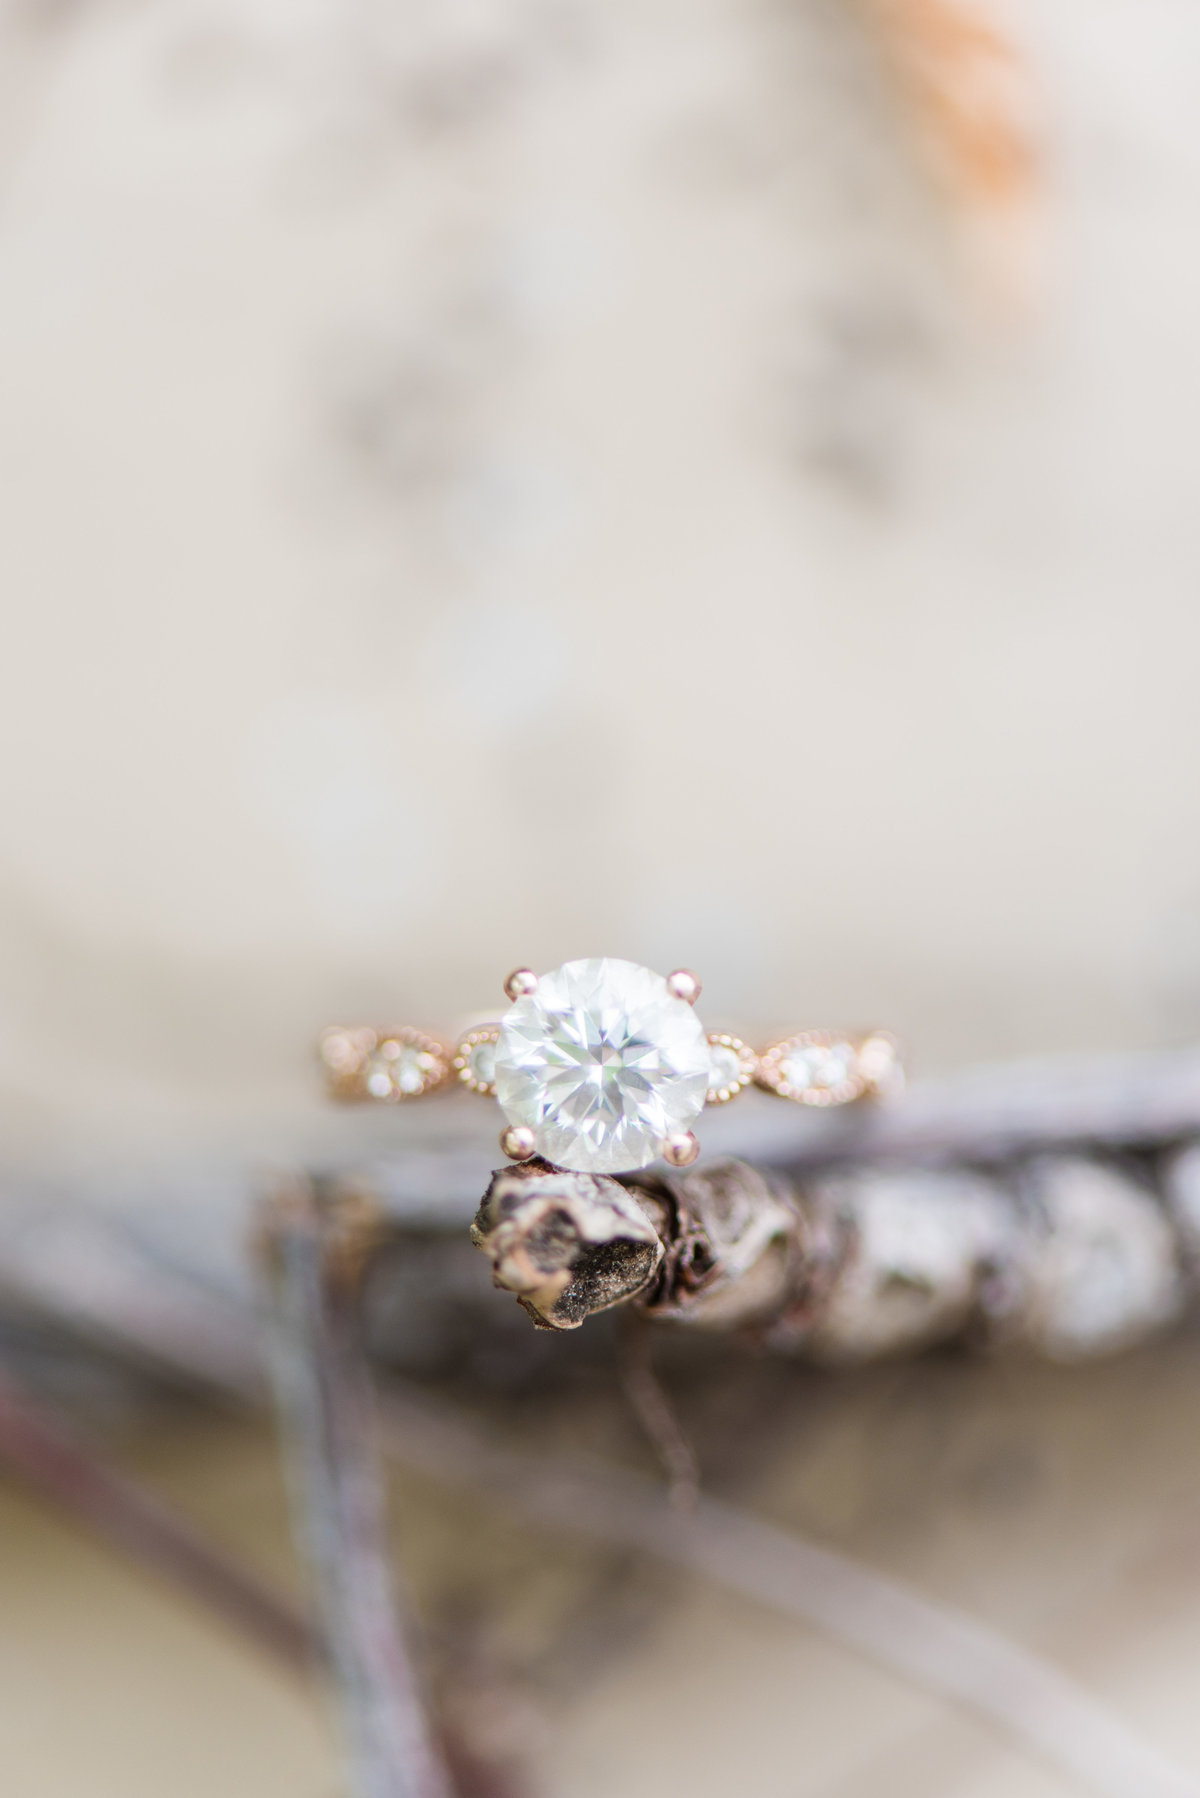 Halo Engagement Ring Details Rose Gold Ring Virginia Wedding Photographer